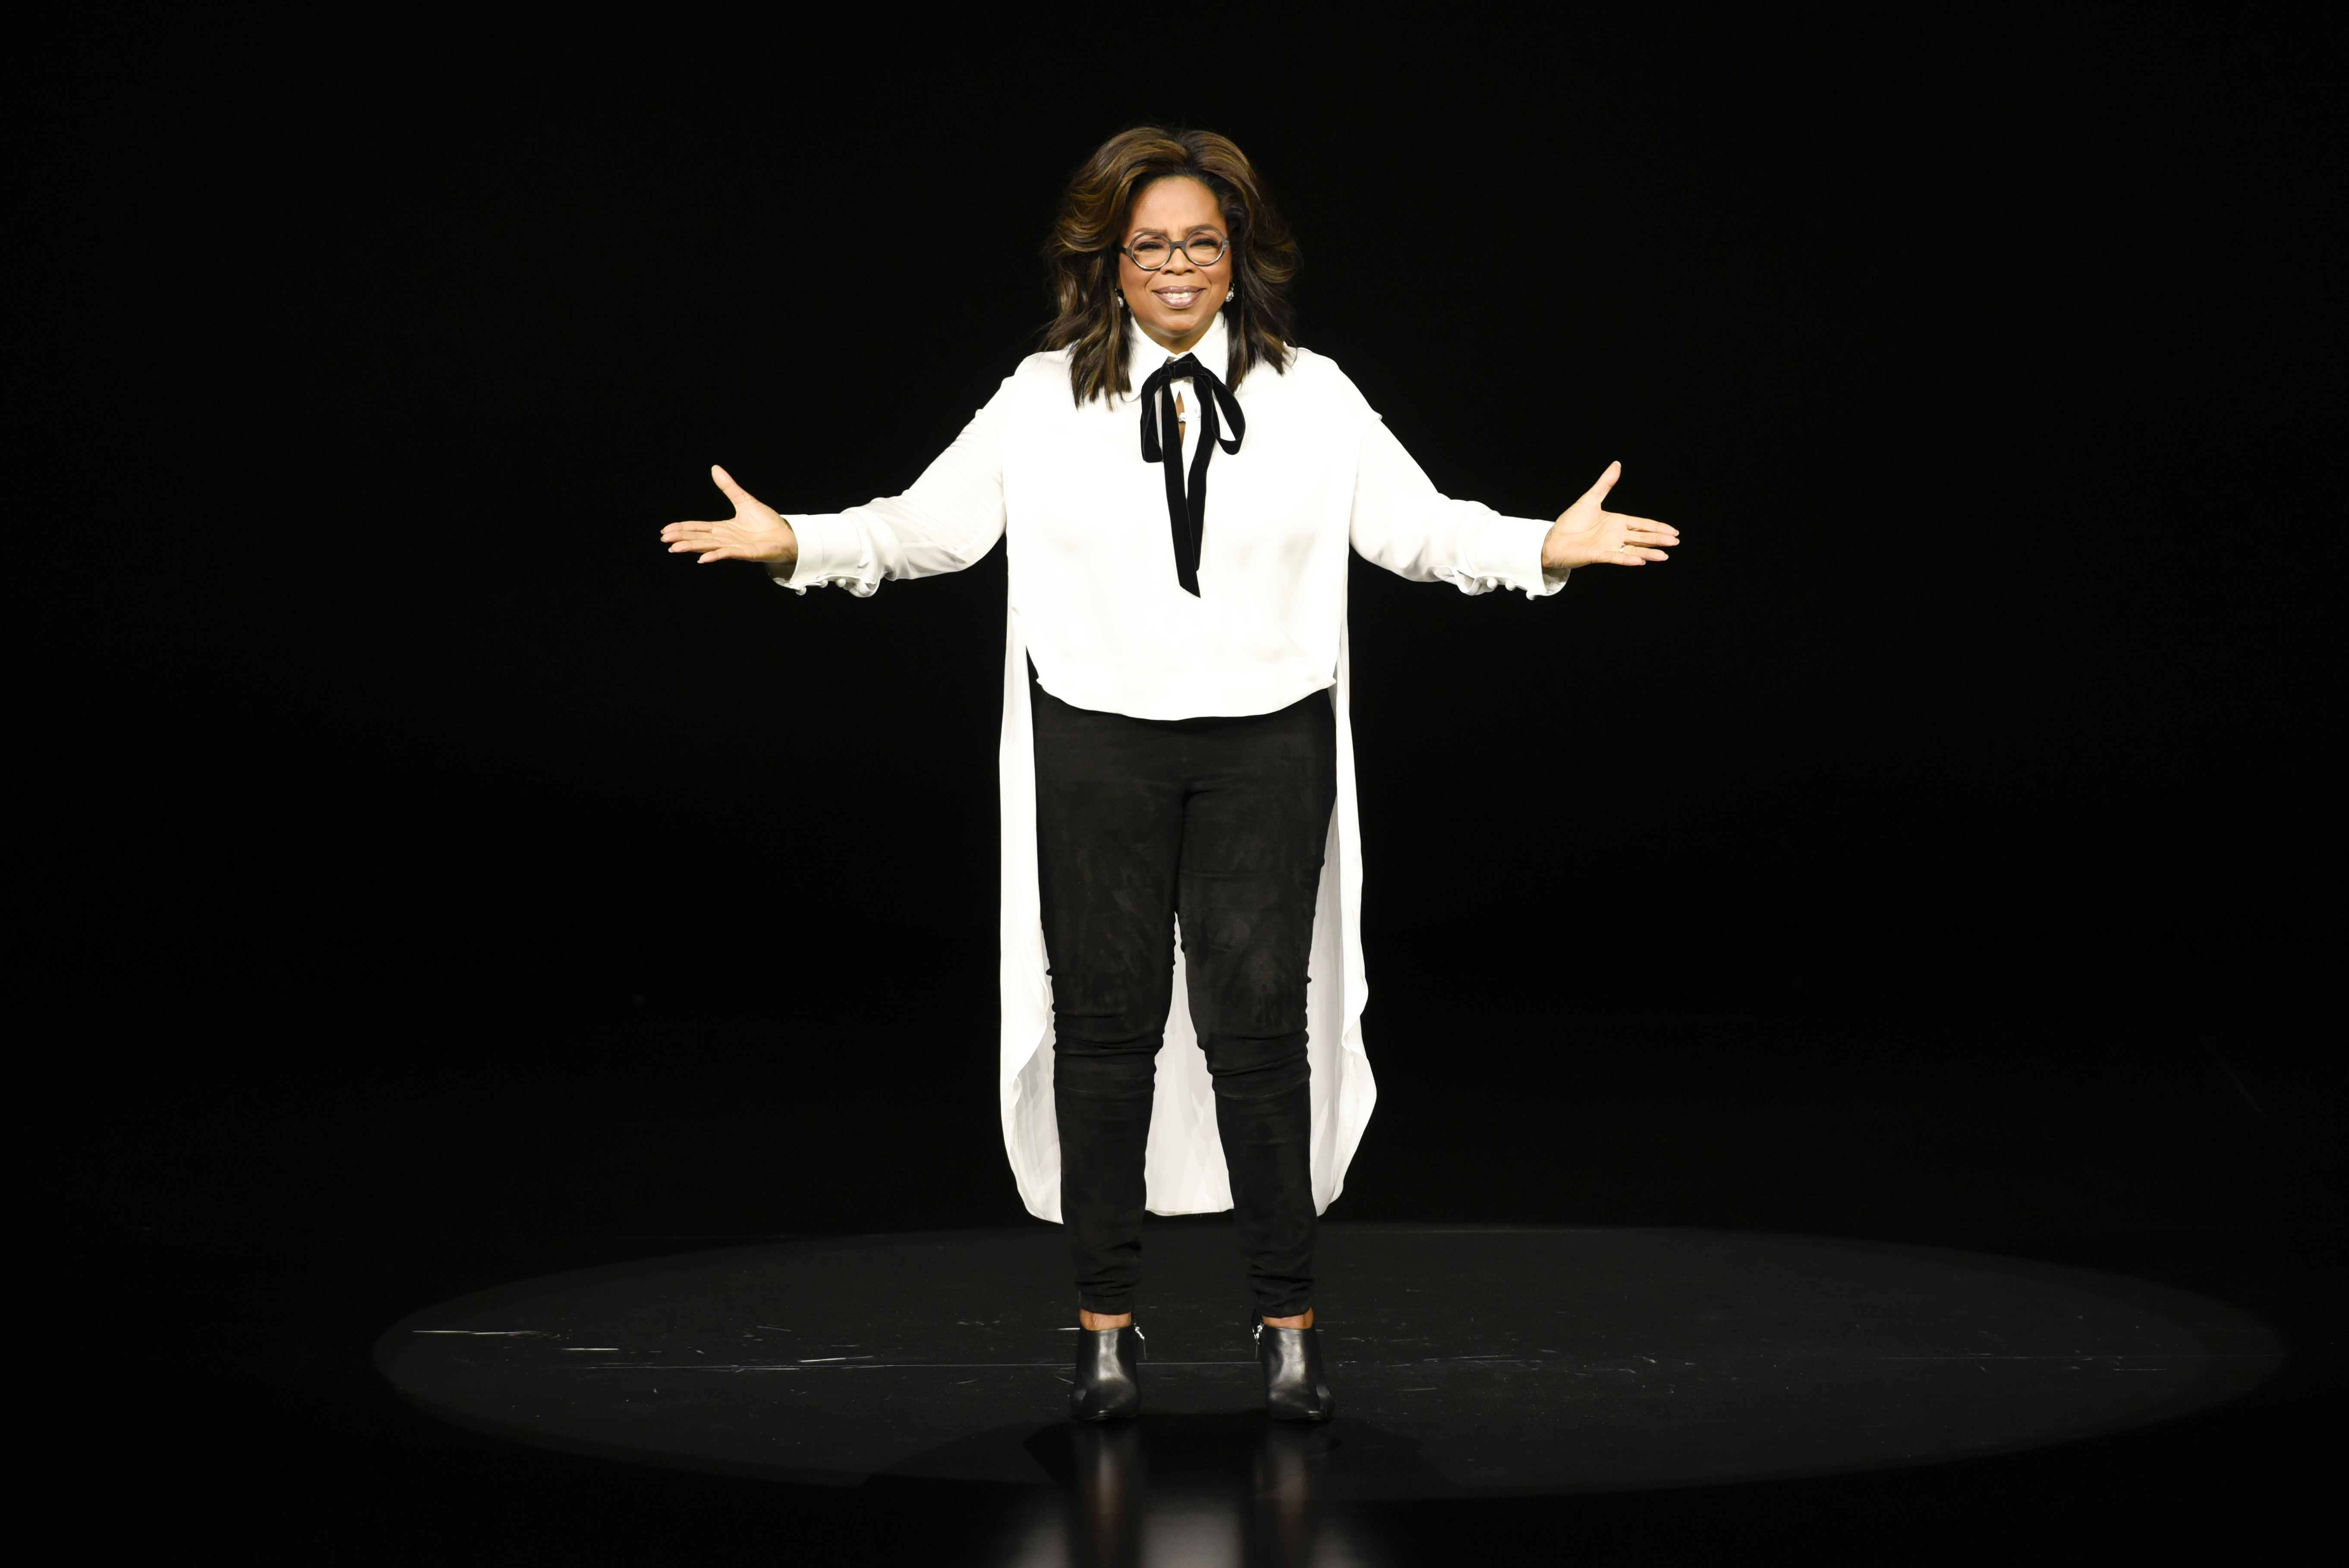 Oprah Winfrey onstage at the Apple event in Cupertino.